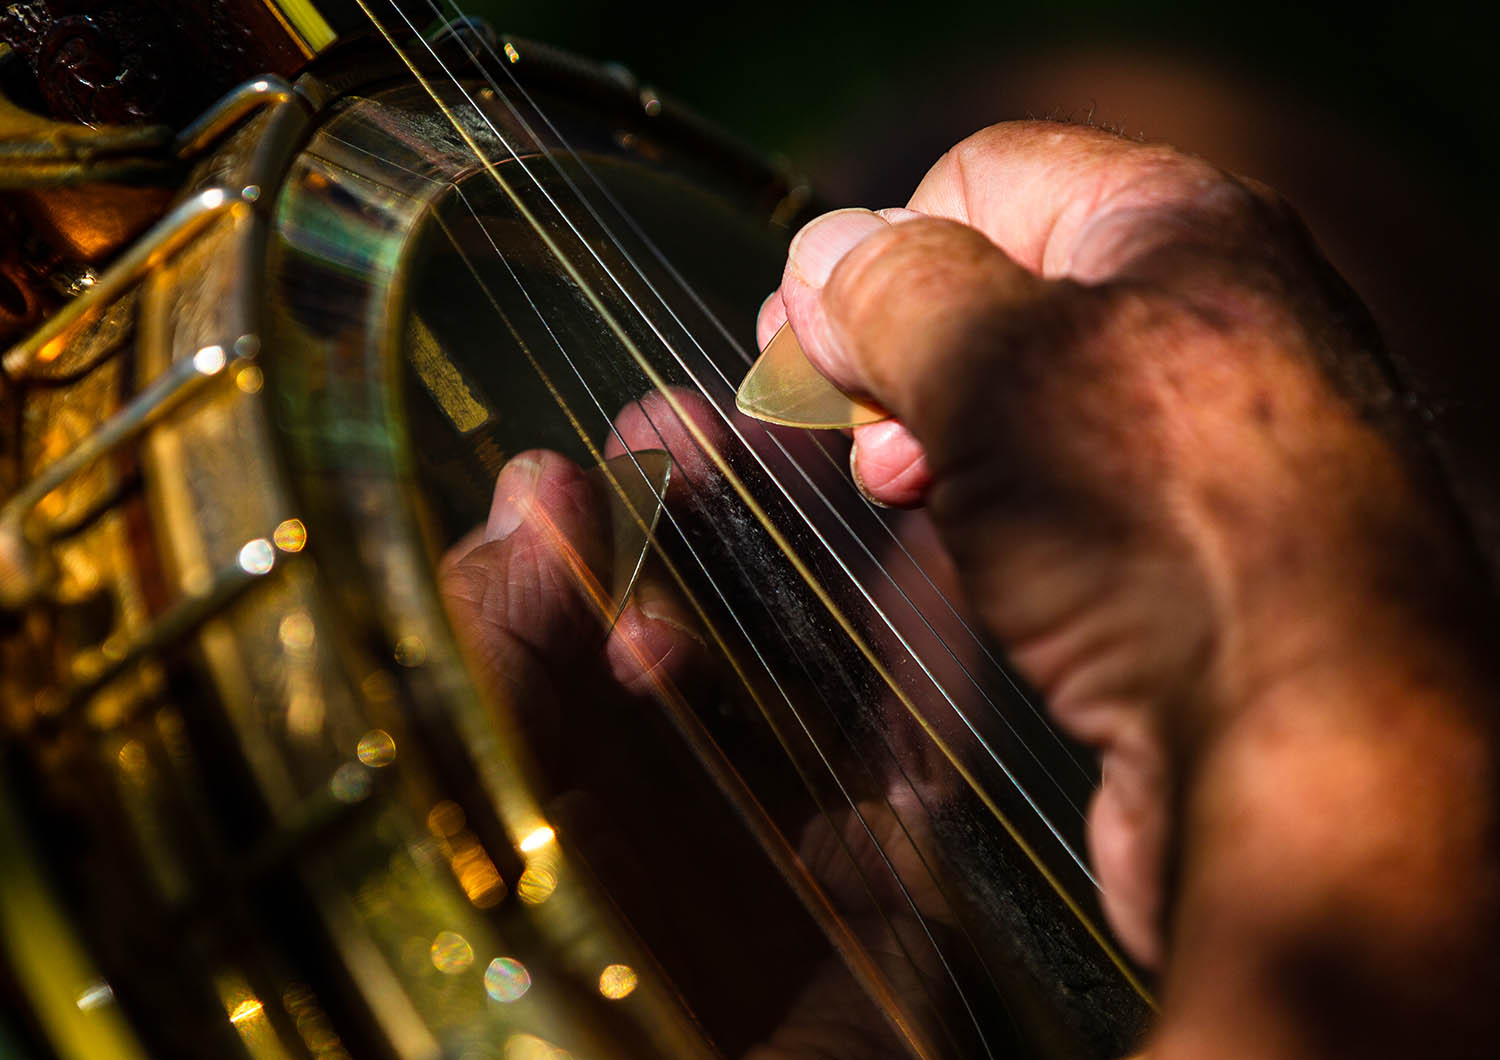 Phil Kuhl, of Morton, Ill., plucks the strings on his plectrum banjo from the 1970s as he performs with The All Frets Flash Mob on the lawn of the Old State Capitol, Friday, July 12, 2019, in Springfield, Ill. The All Frets Flash Mob are part of a group of banjo players that have congregated in Springfield for the All Frets Convention hosted by the Central Illinois Banjo Club at the Crowne Plaza. The convention, which is dedicated to music played on banjos, ukuleles, mandolins, guitars and other fretted instruments, concludes on Saturday with a concert at the Crowne Plaza starting at 7 p.m. [Justin L. Fowler/The State Journal-Register]